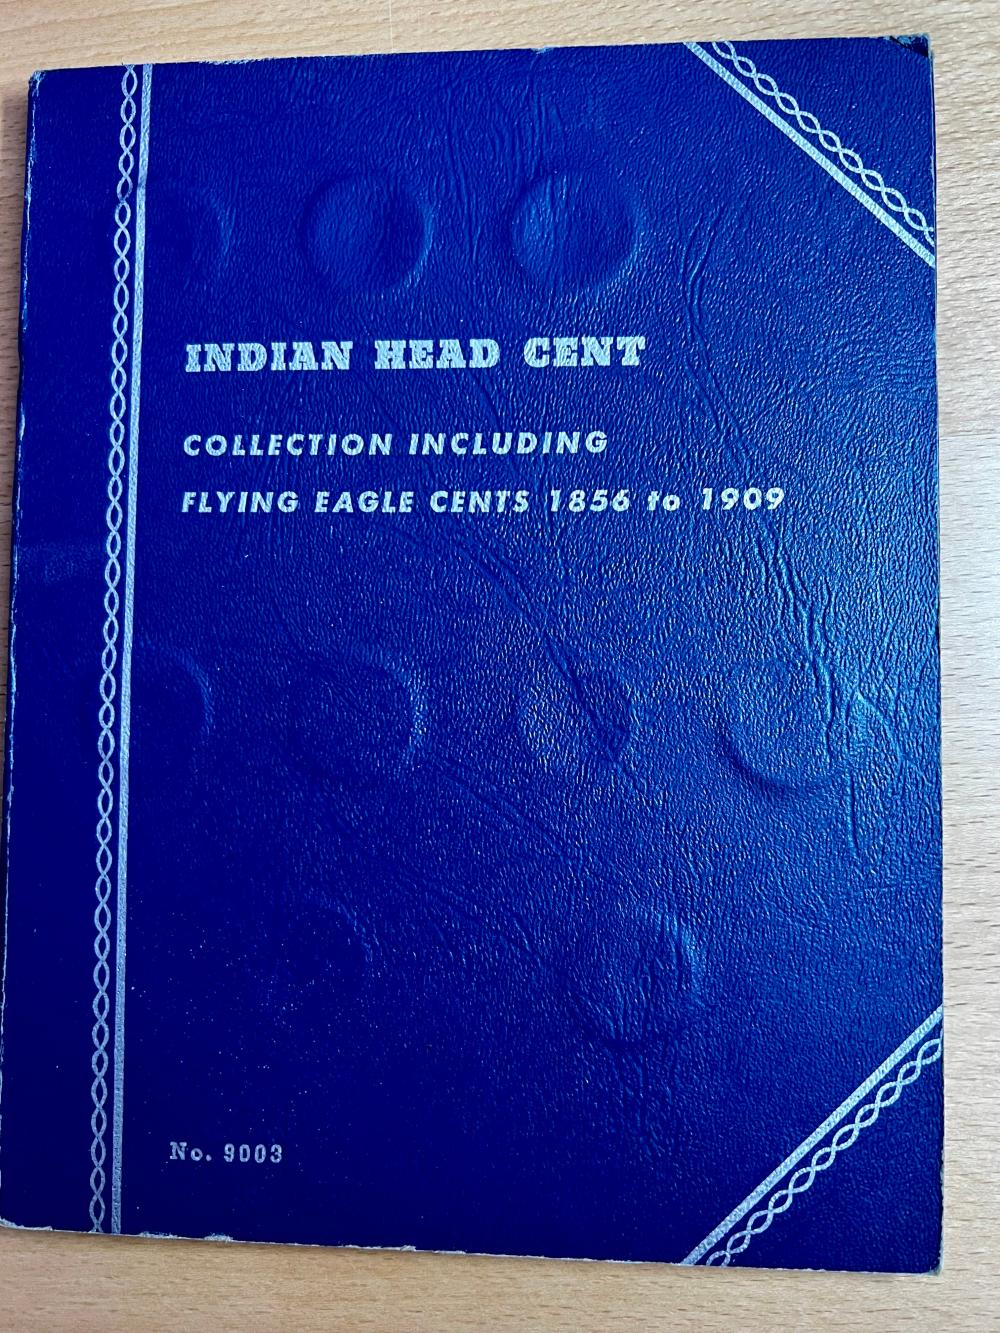 Partial Set Of Indian Head Cents Missing 7 Coins